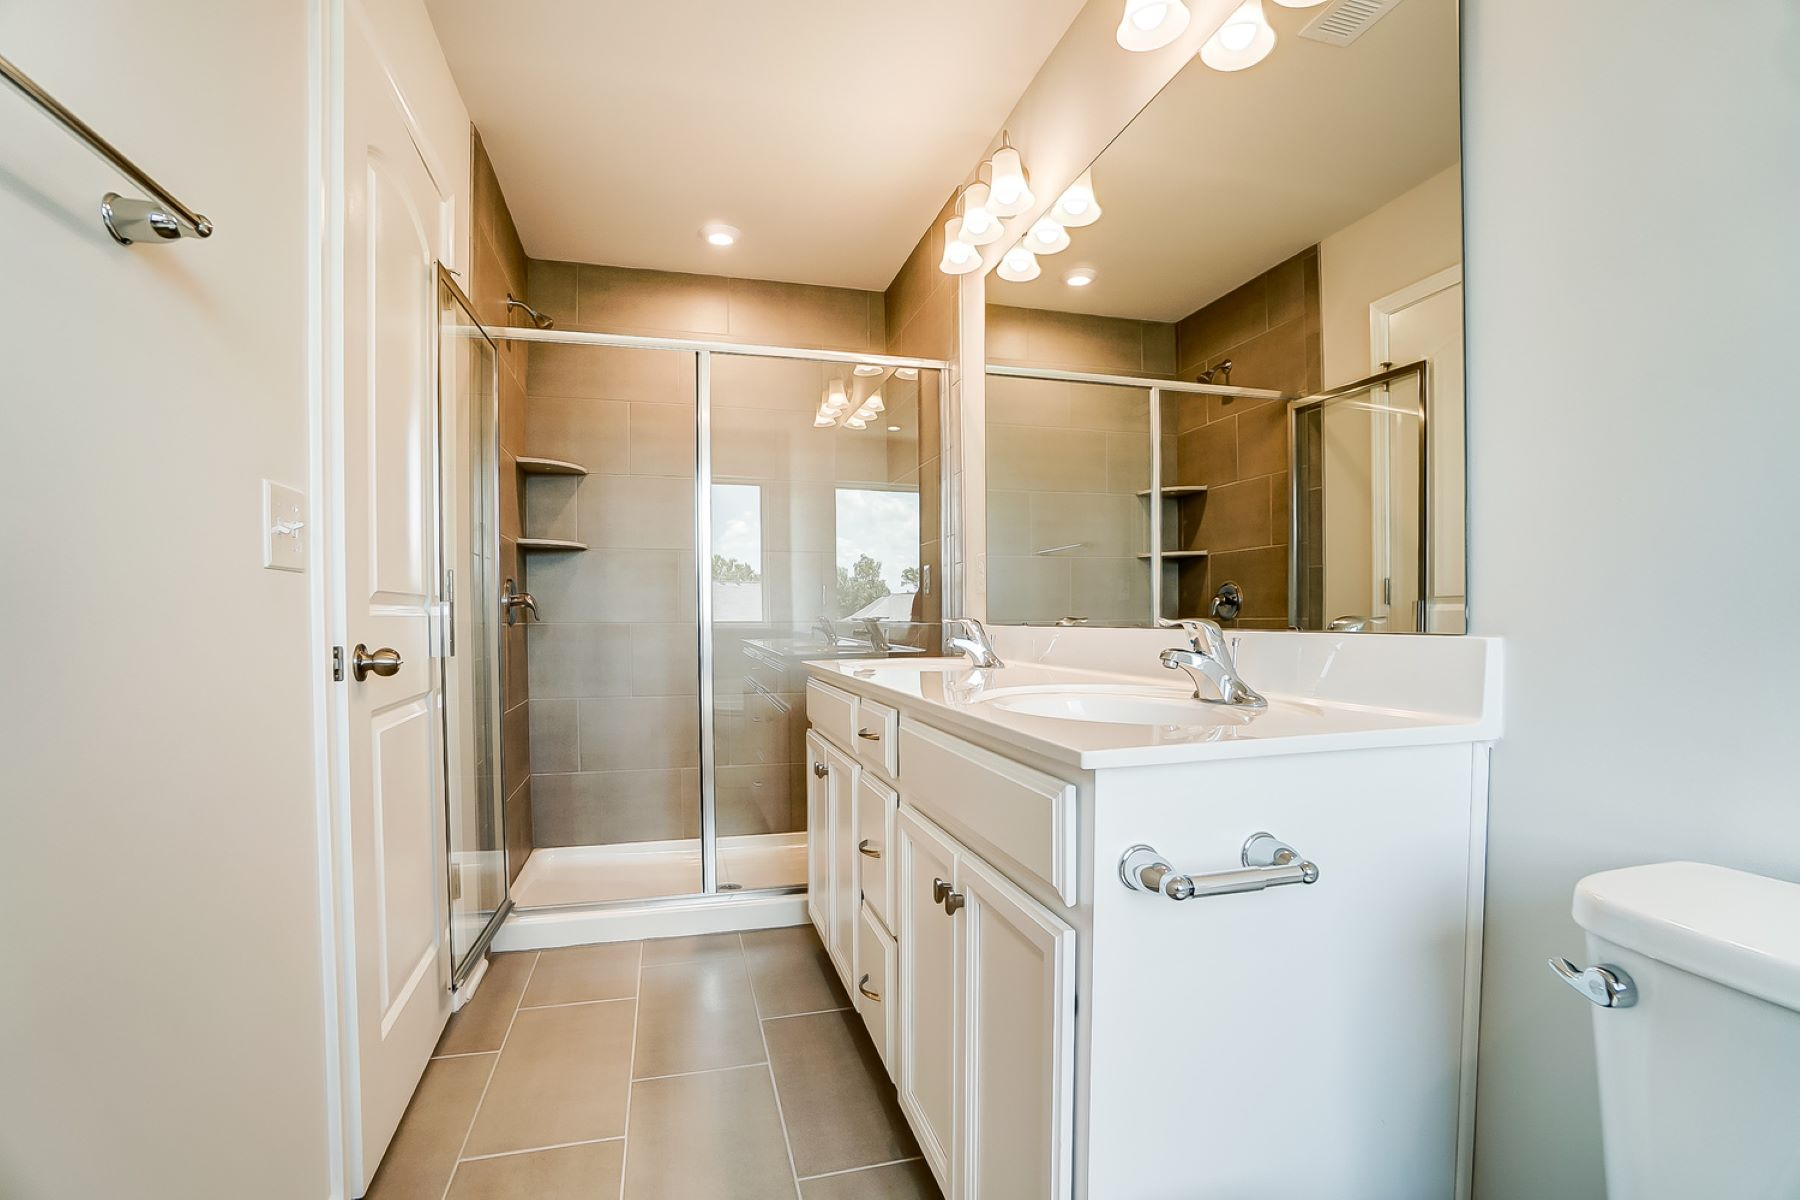 Brooke Plan Bathroom_Master Bath at Galloway Park in Charlotte North Carolina by Mattamy Homes